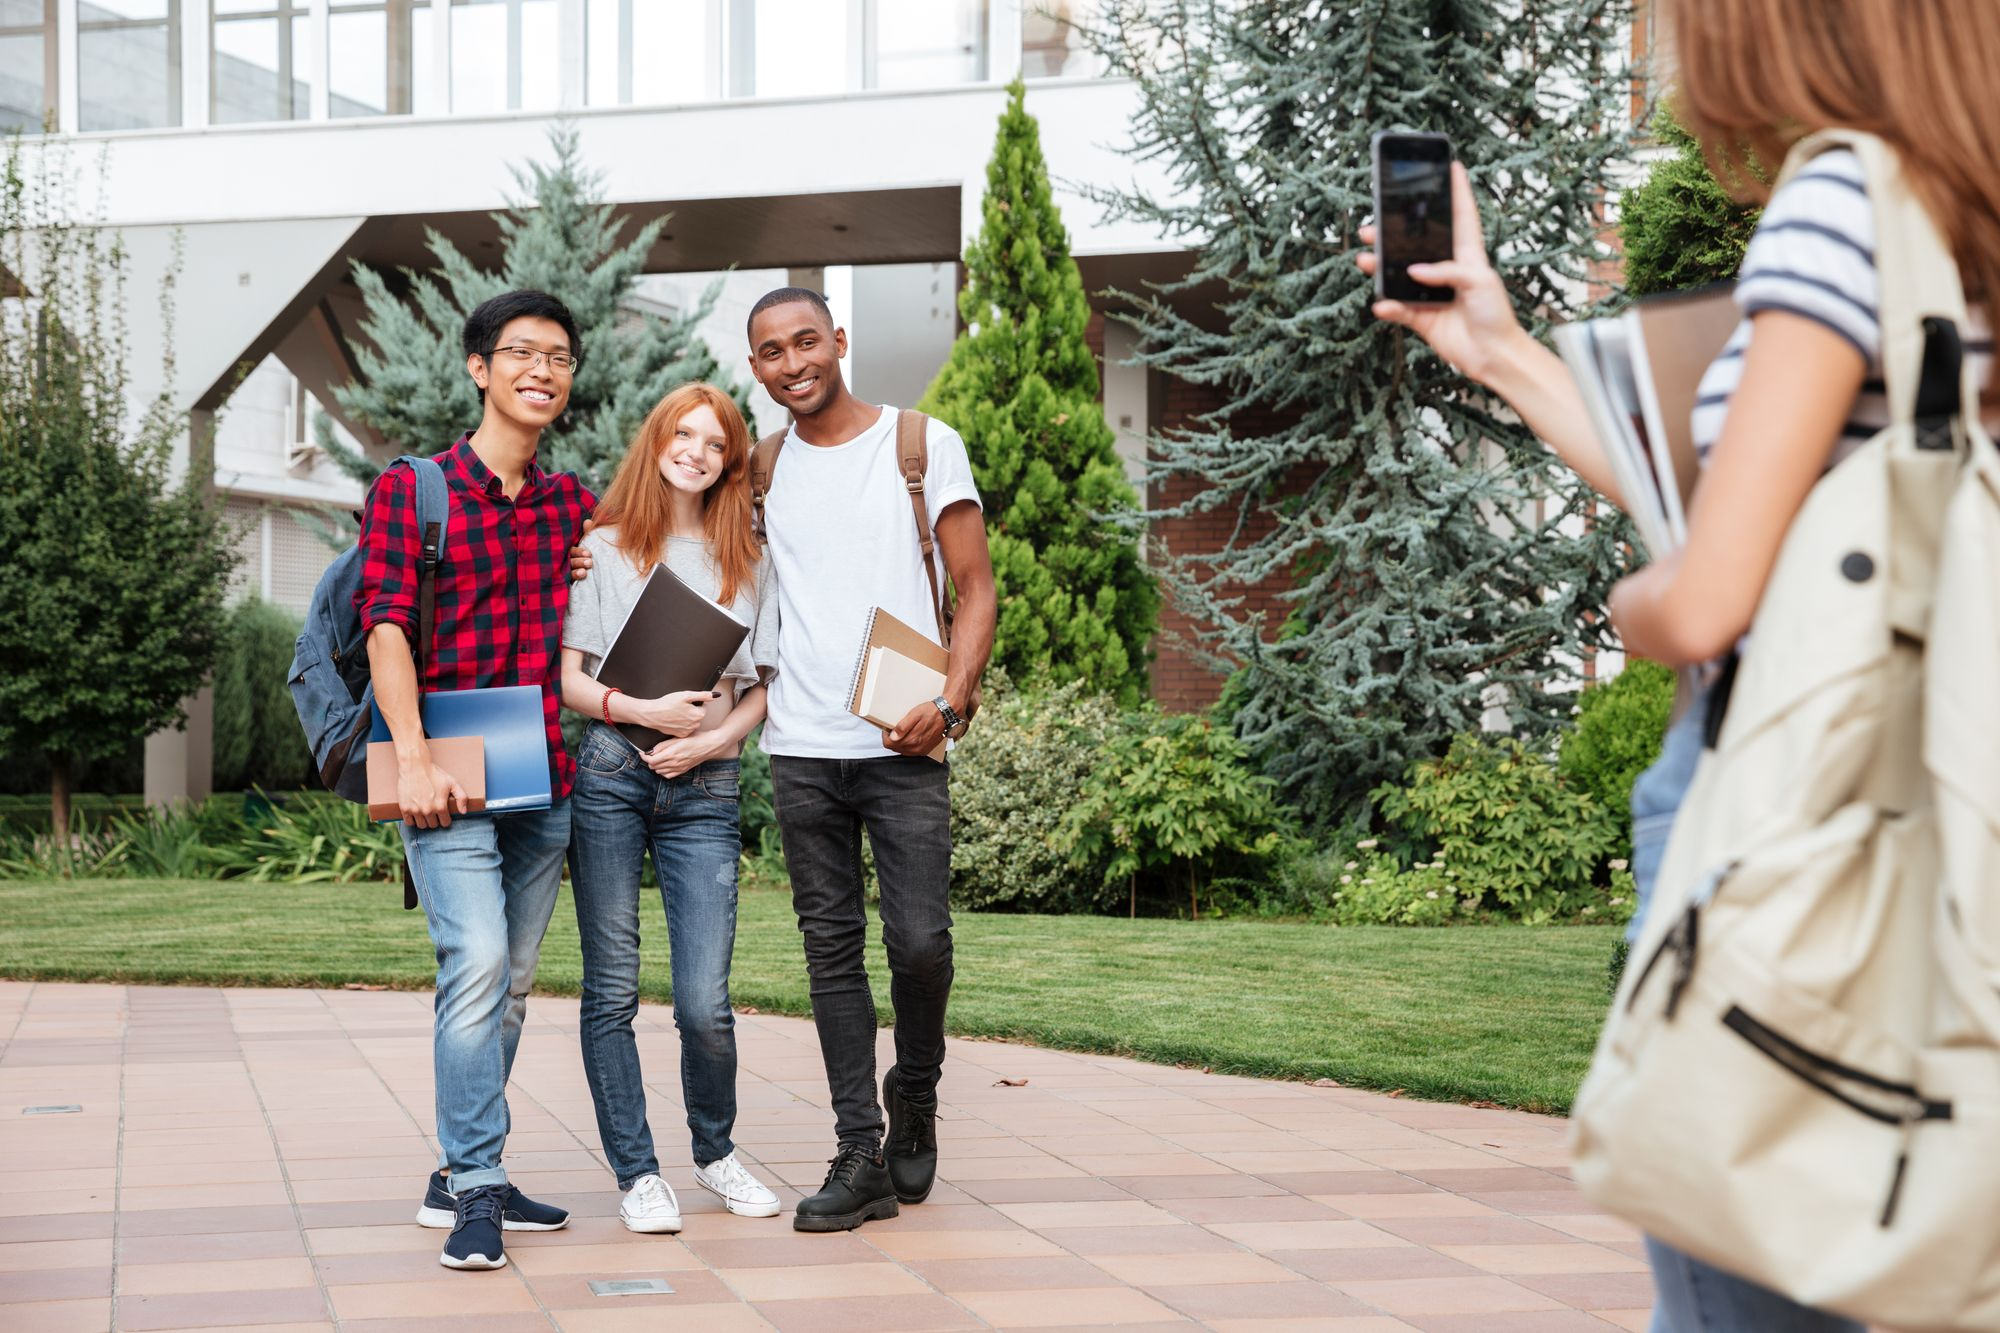 Financial Advice is important for Young Adults finishing school and beginning their careers.